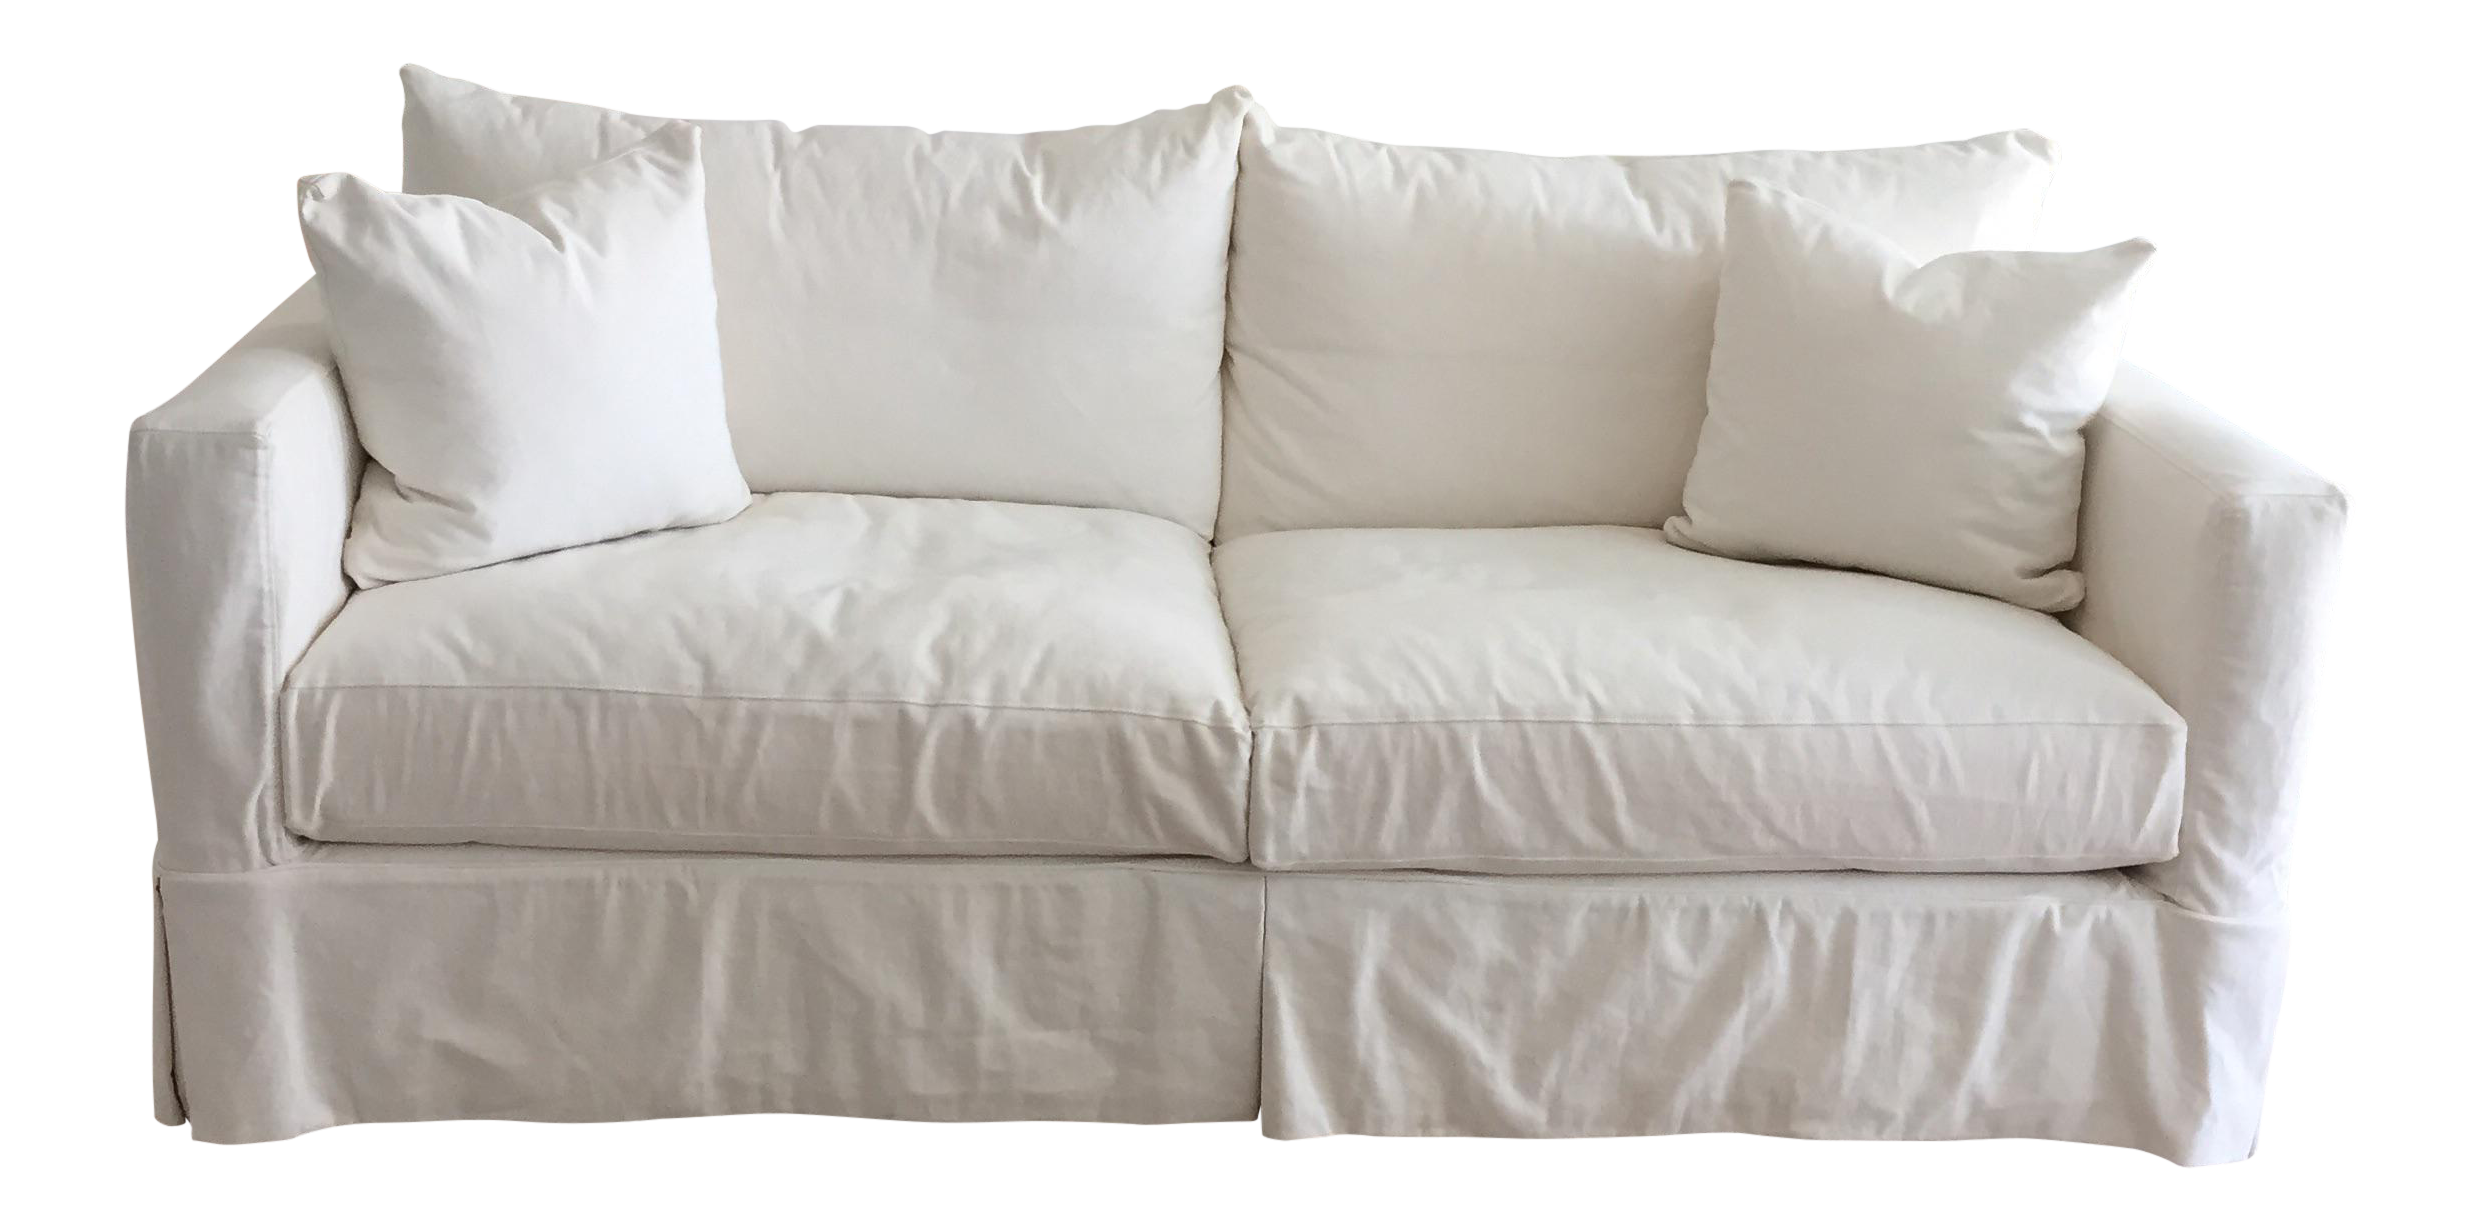 Crate Barrel White Willow Sofa Chairish